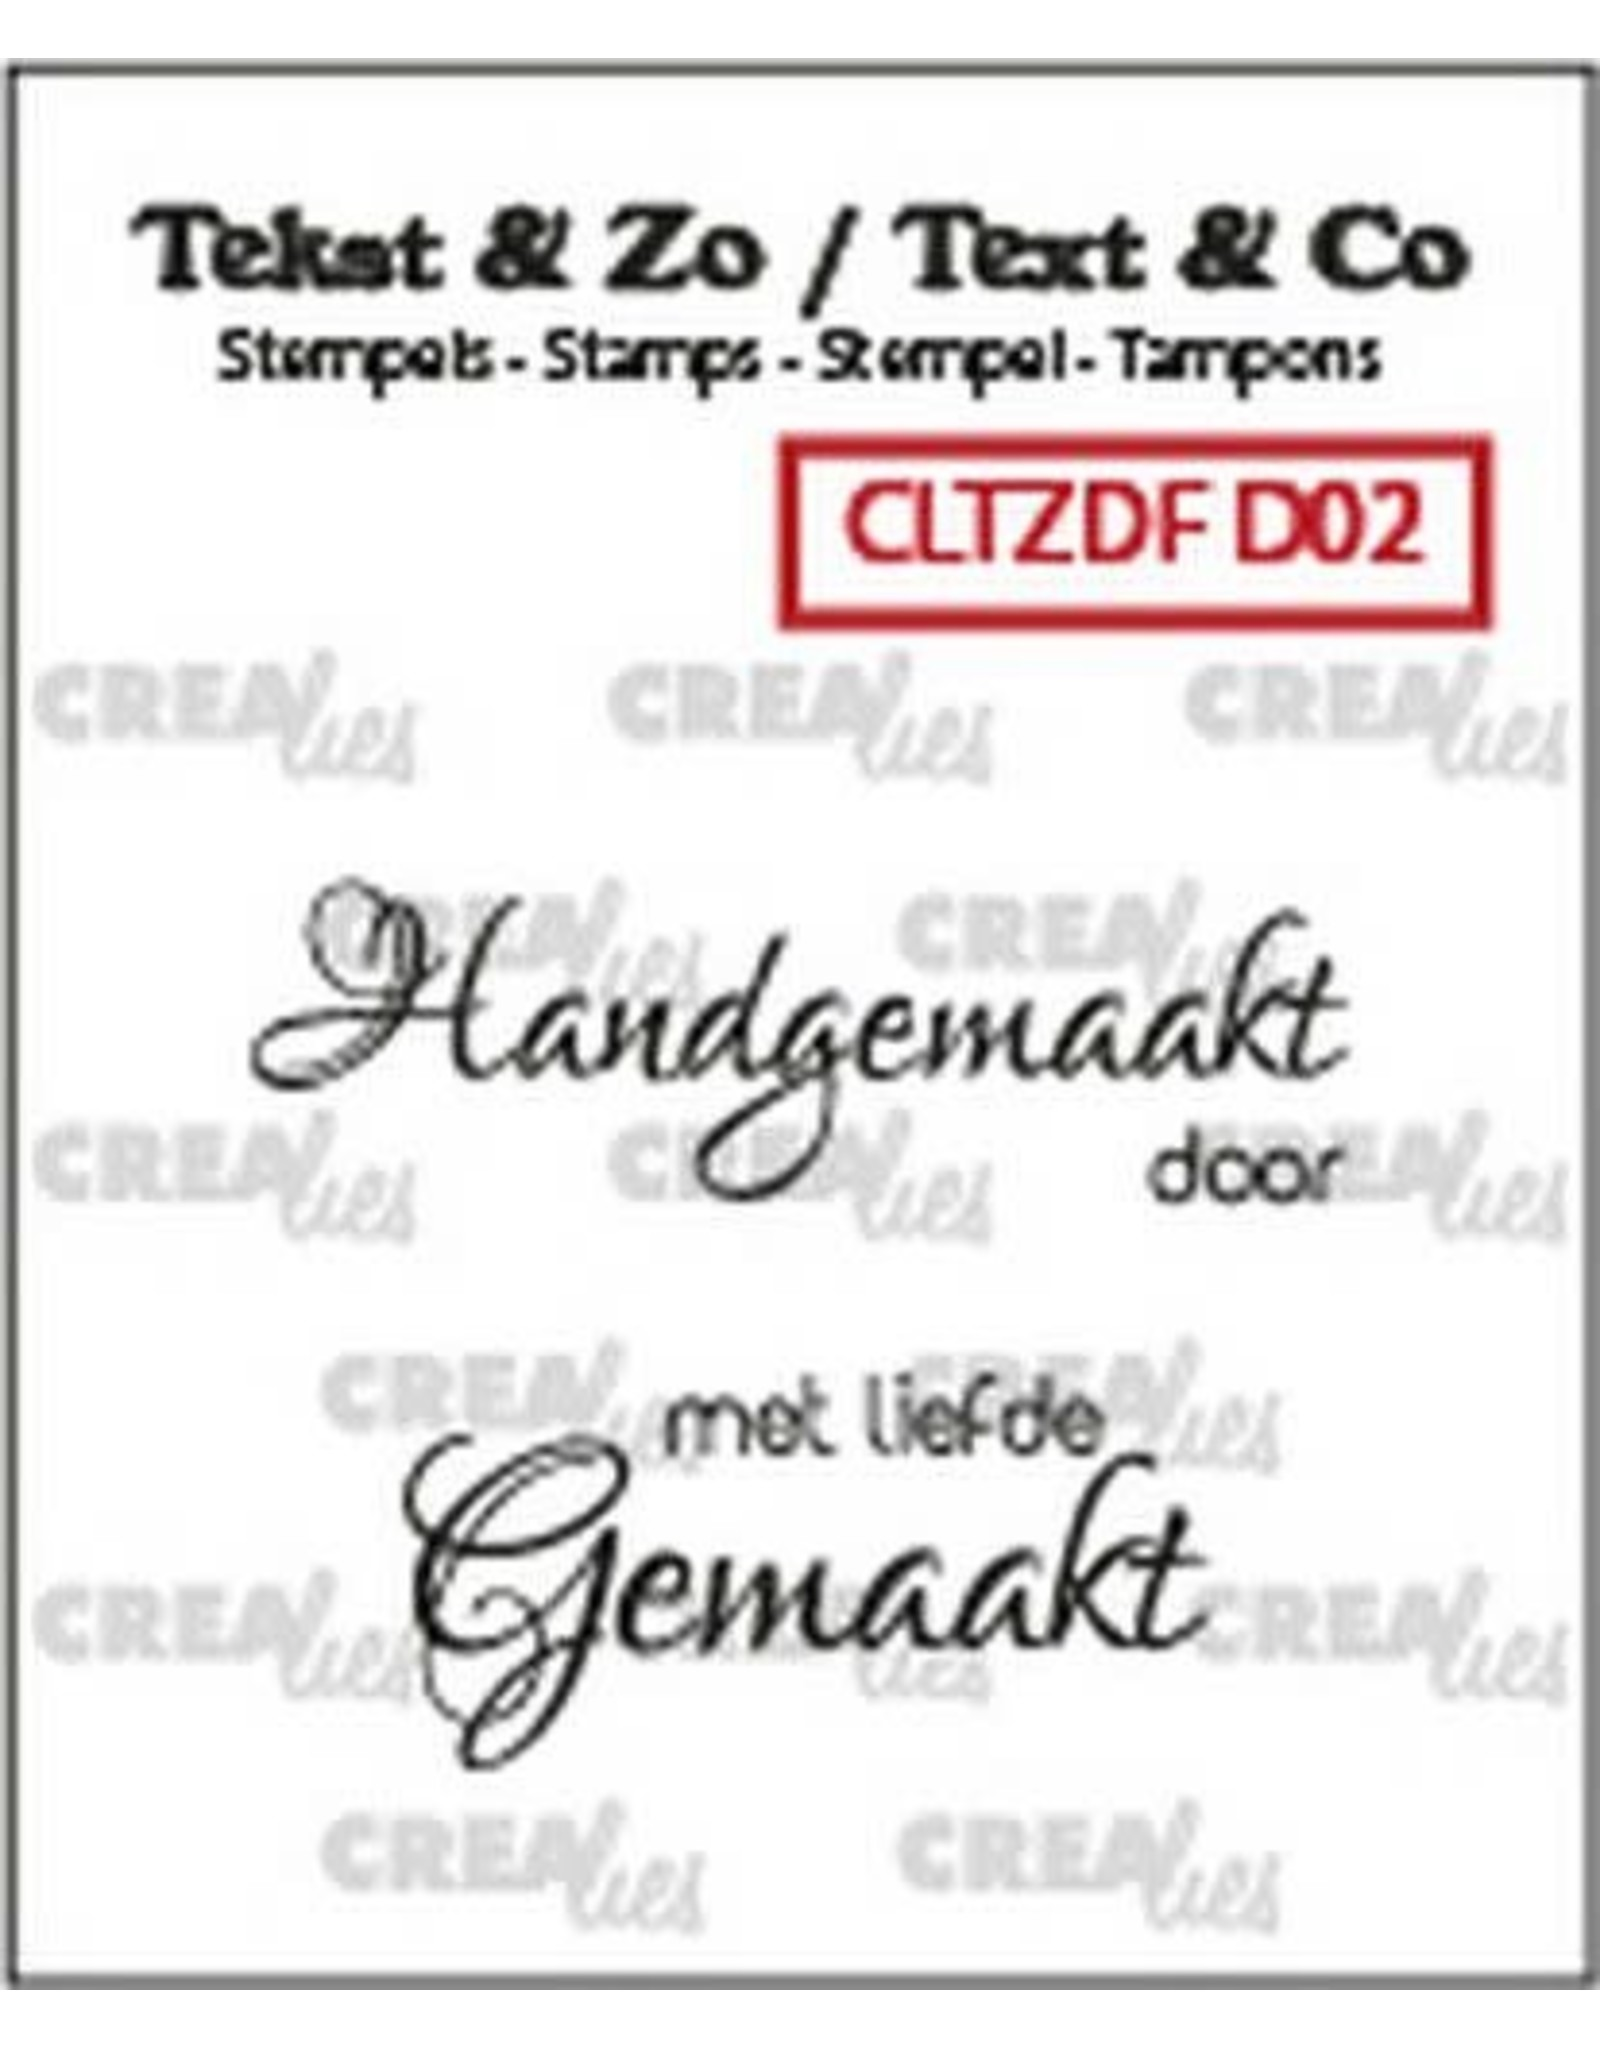 Crealies Crealies Clearstamp Tekst & Zo Font Divers no. 2 (NL) CLTZDFD02 38x11 mm